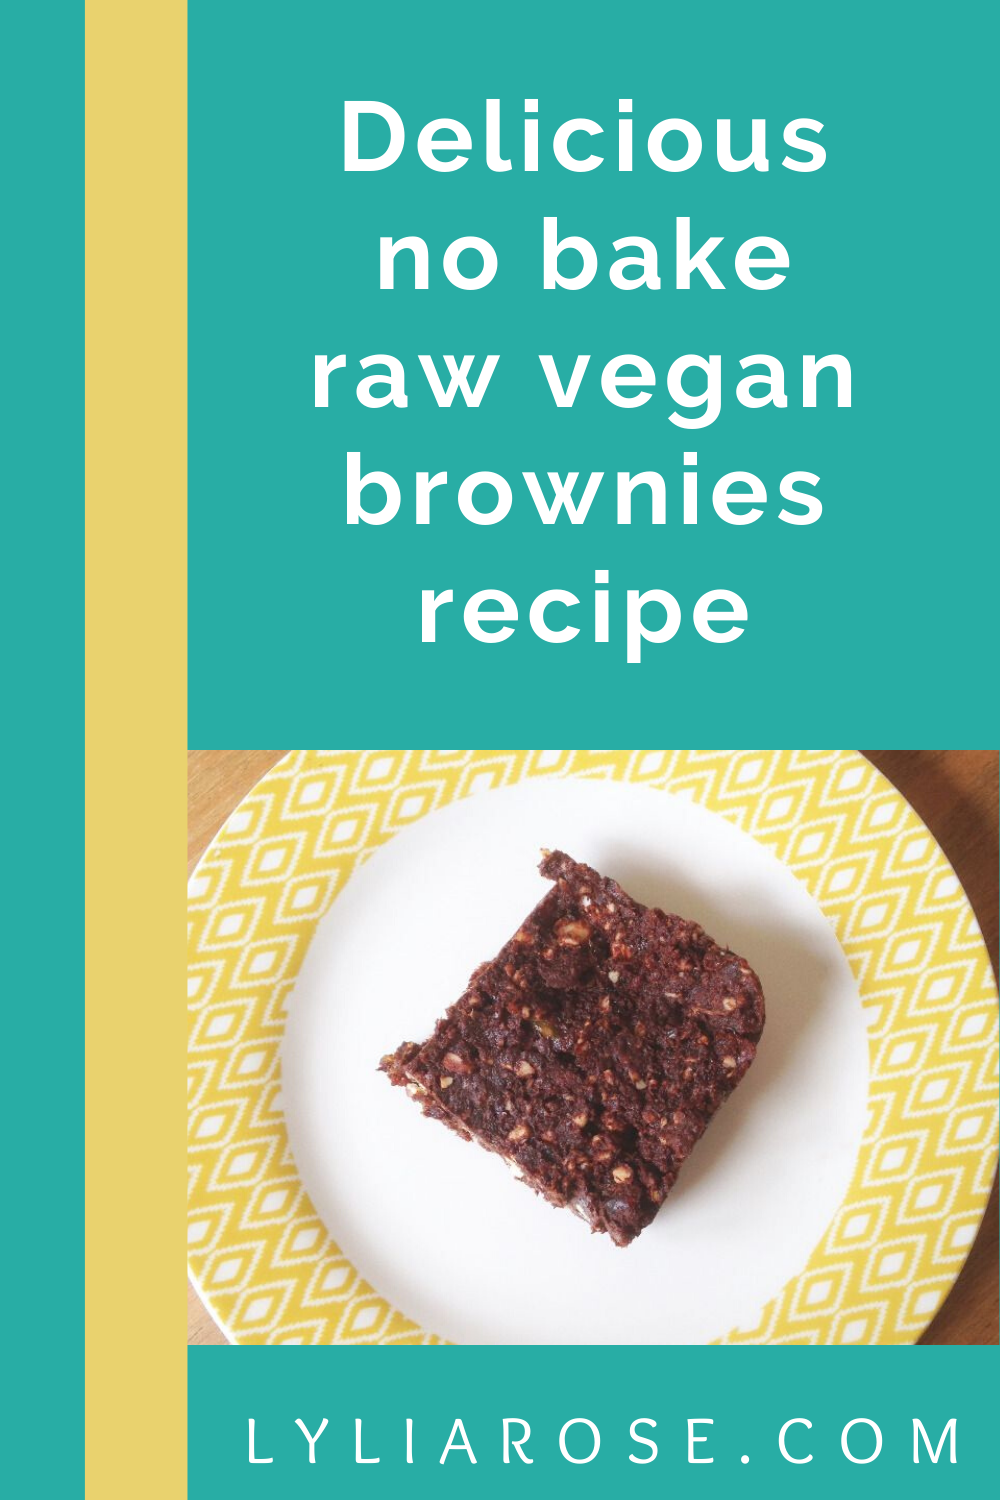 Delicious no bake raw vegan brownies recipe